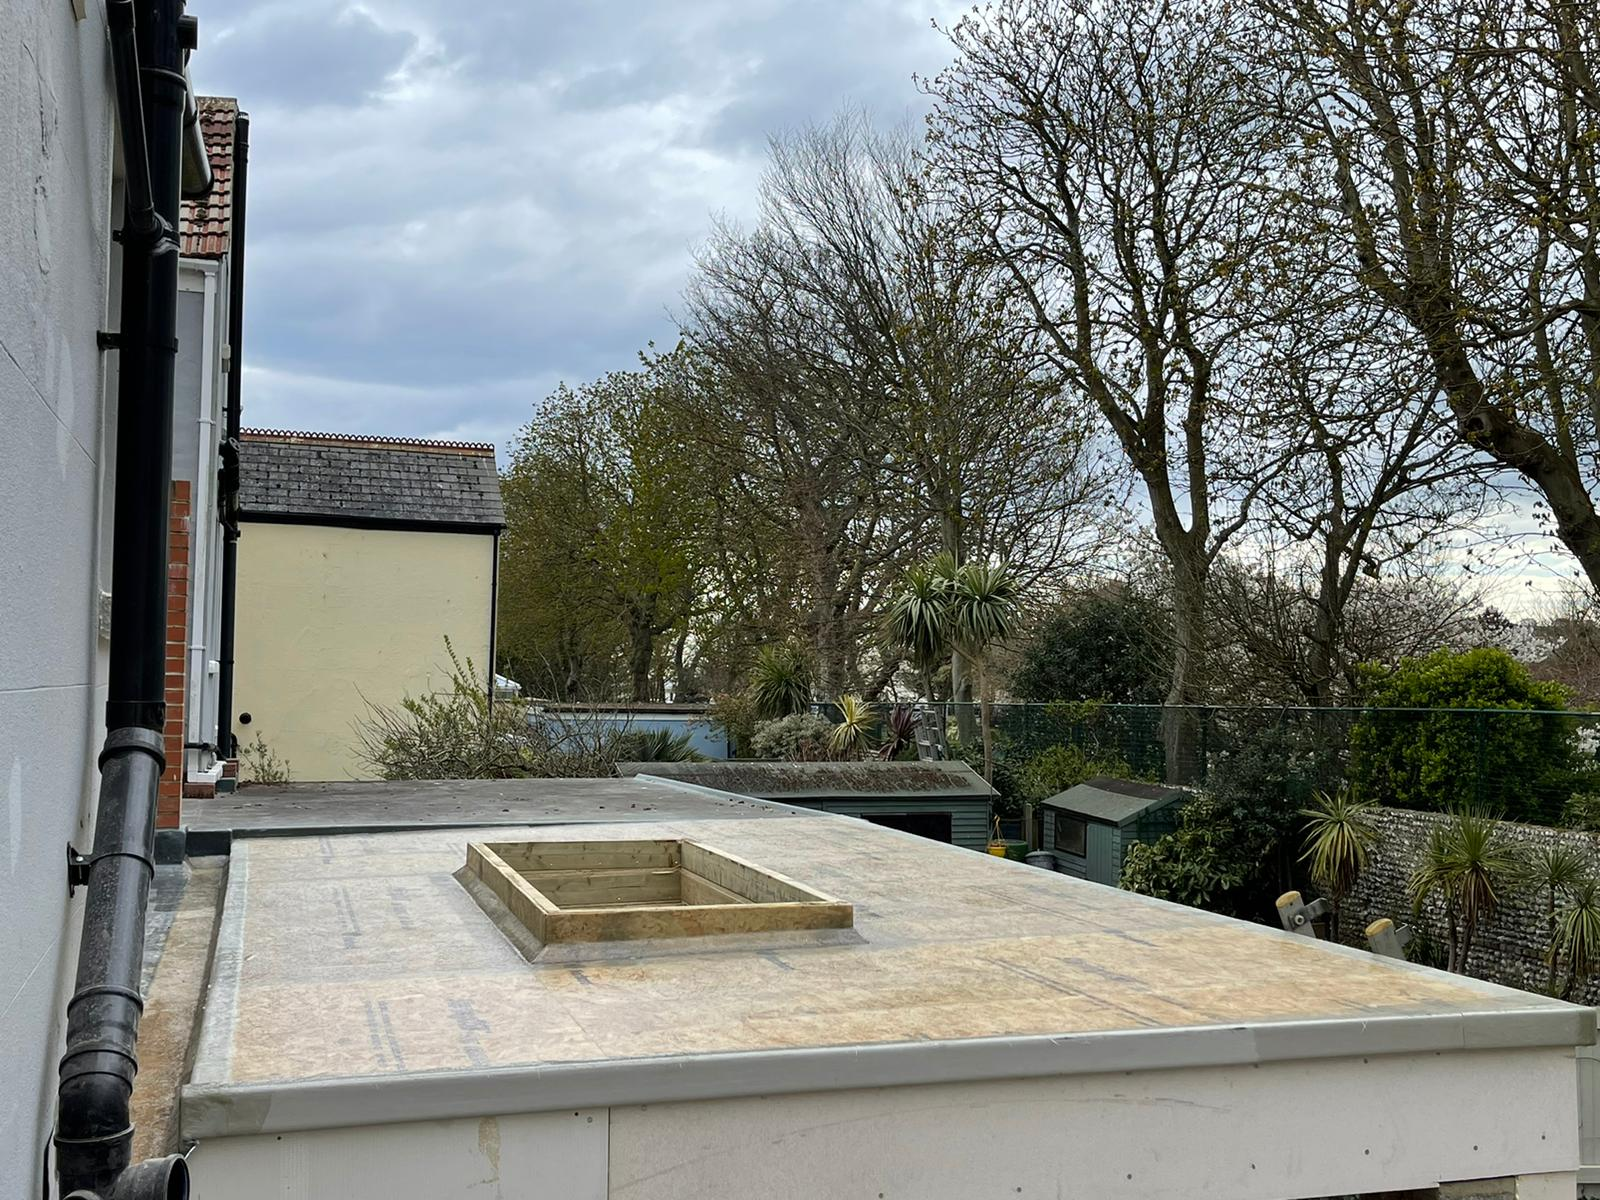 GRP Flat Roof on a New Extension in Worthing April 2021 by NextGen Roofing Ltd - Roofing Contractors in Sussex